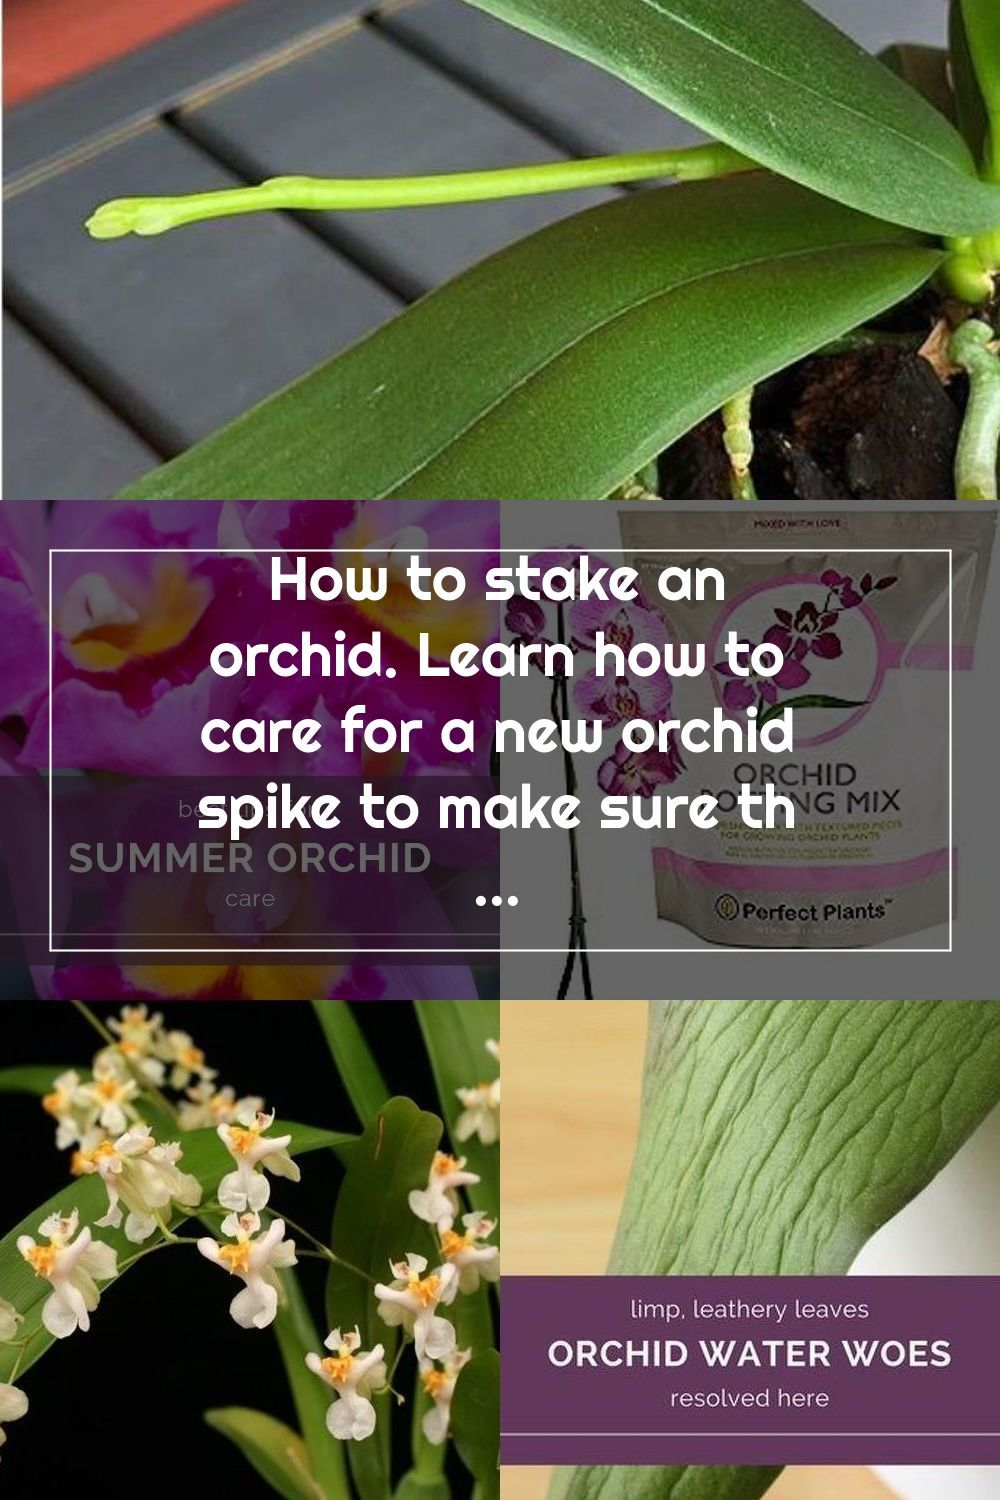 How To Stake An Orchid Learn How To Care For A New Orchid Spike To Make Sure The Blooms Are Spectacular I Love Phalaenopsis In 2020 Orchid Care Orchids Flower Spike